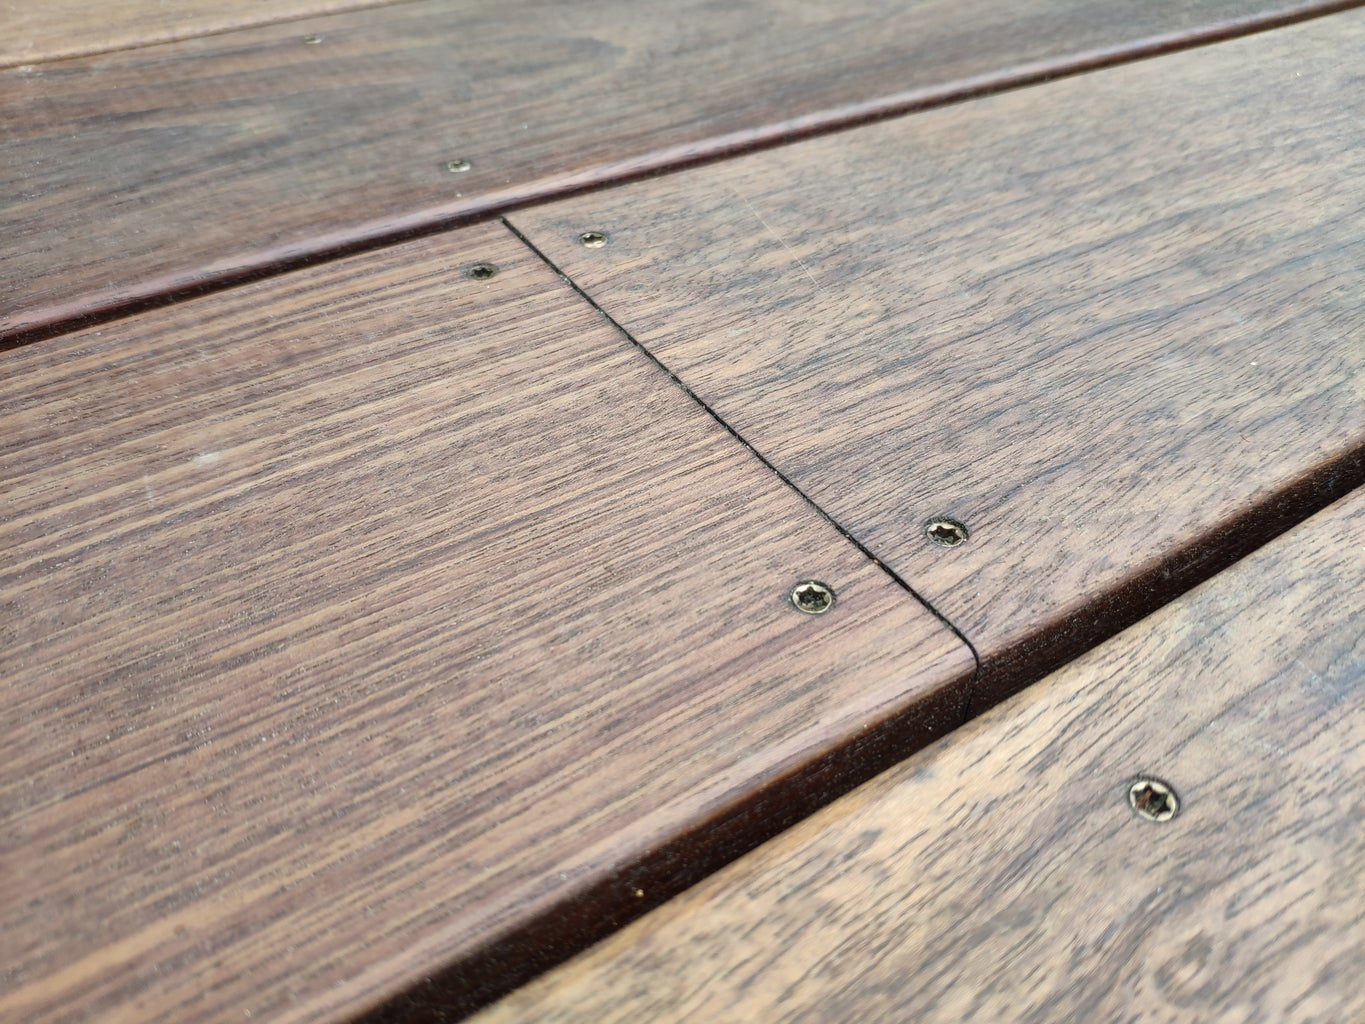 How to Cut the Planks